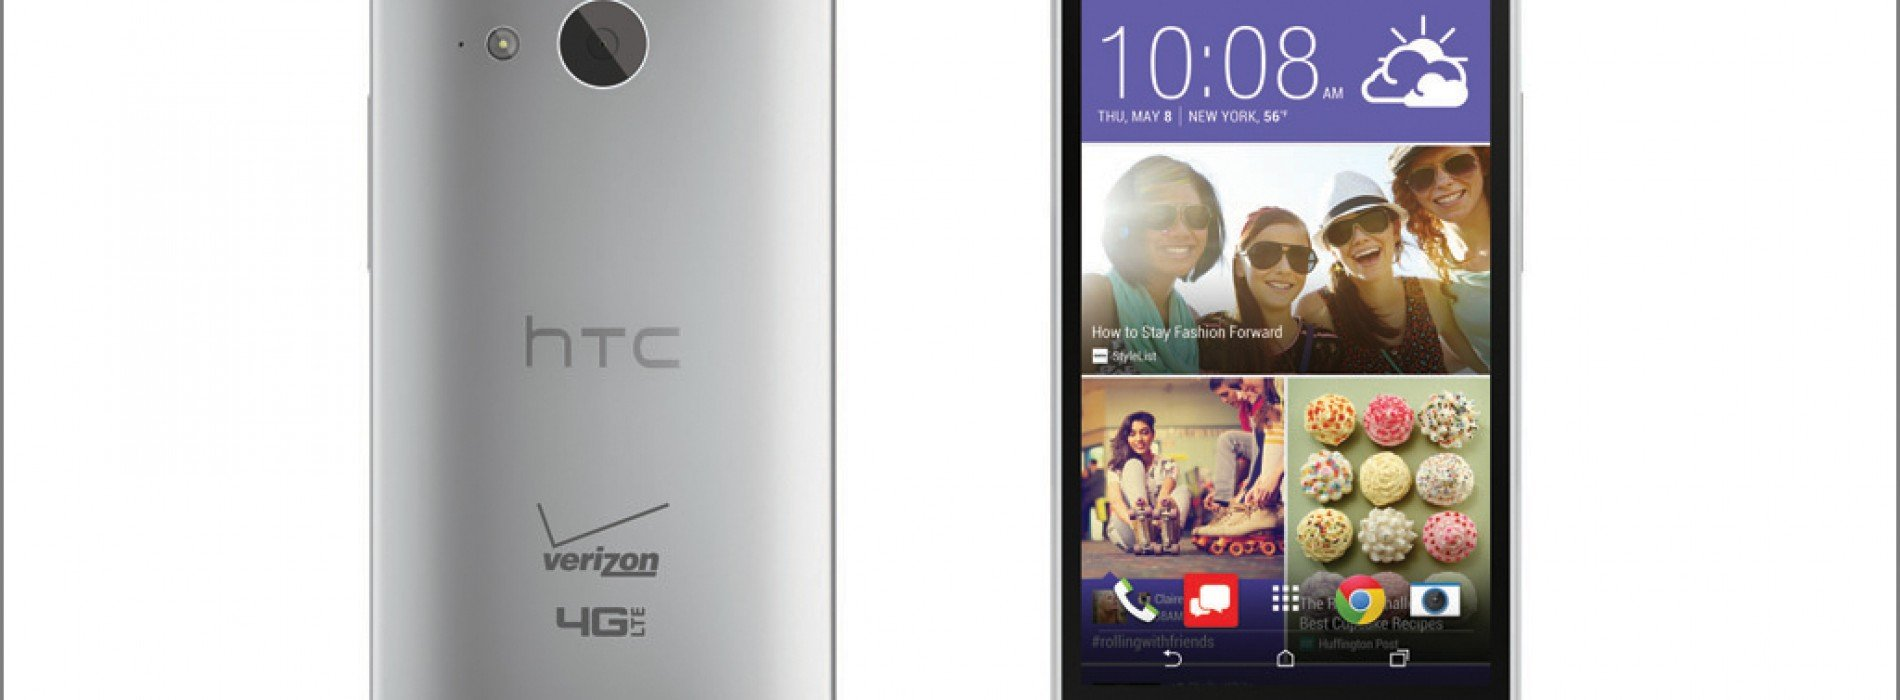 Verizon announces HTC One Remix (One Mini 2) for July 24